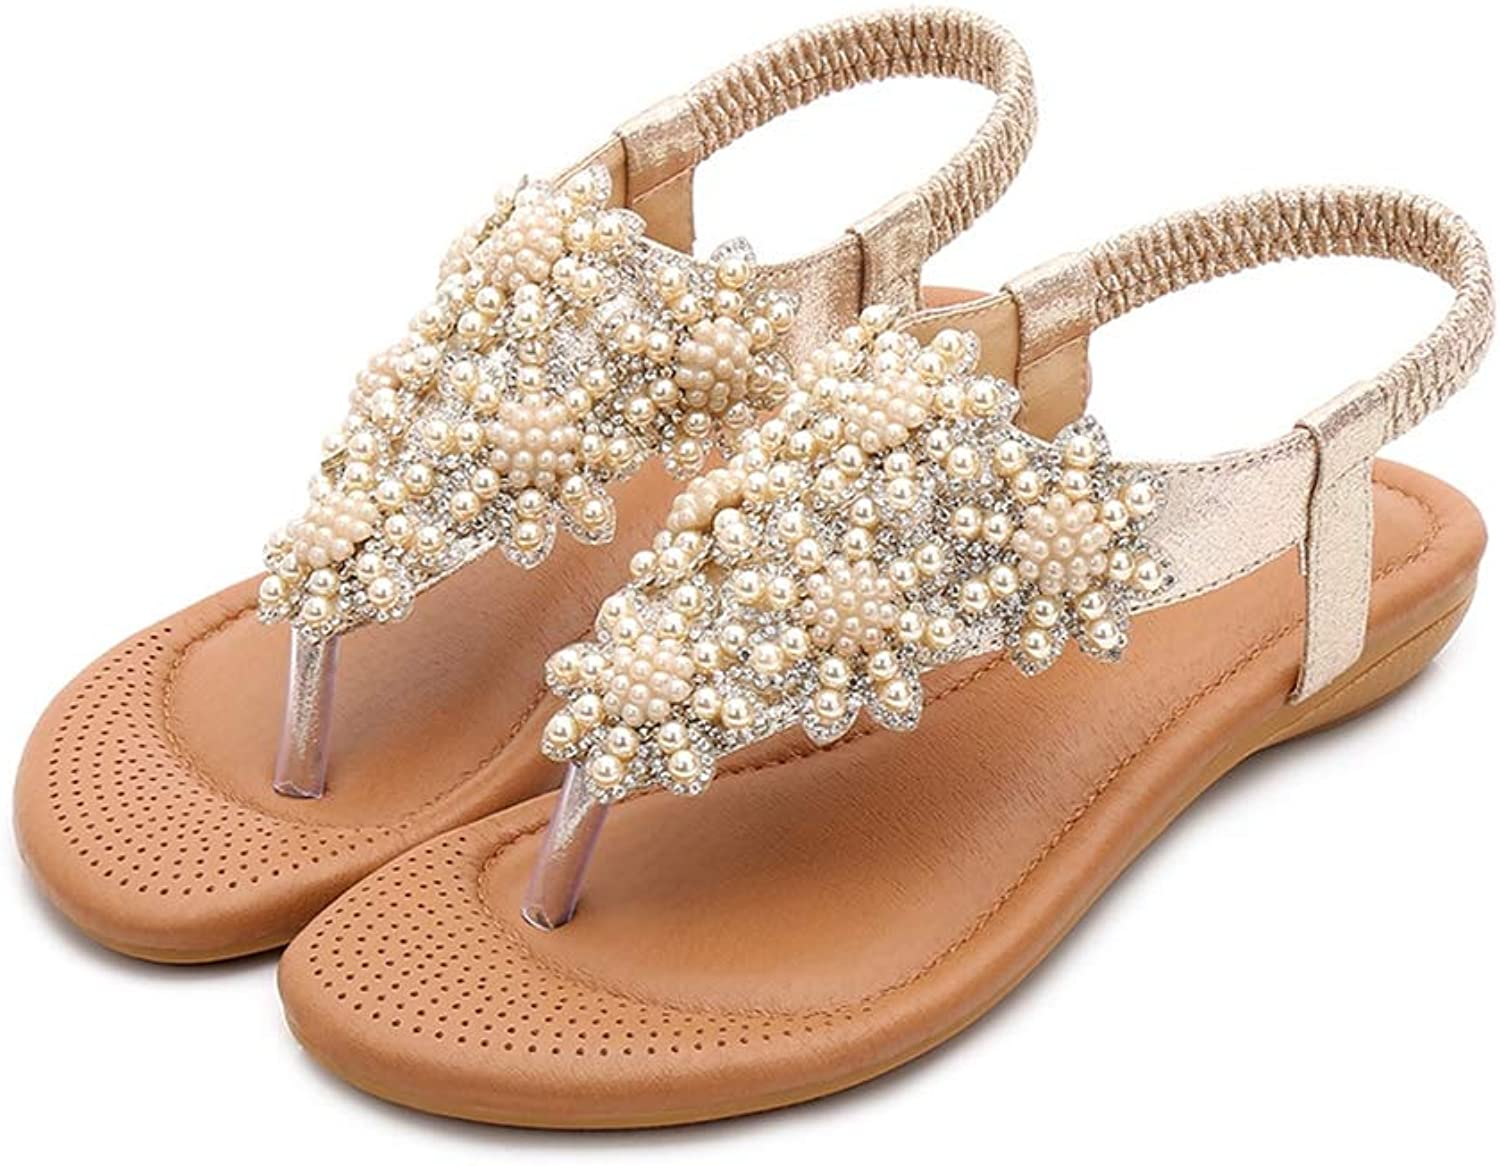 PFMY.DG Summer Women's Sandals, Pinch Open Toe Breathable Rhinestone Beach shoes, Beading Cozy Wear Resistant Flat shoes, Party, Dress, Office